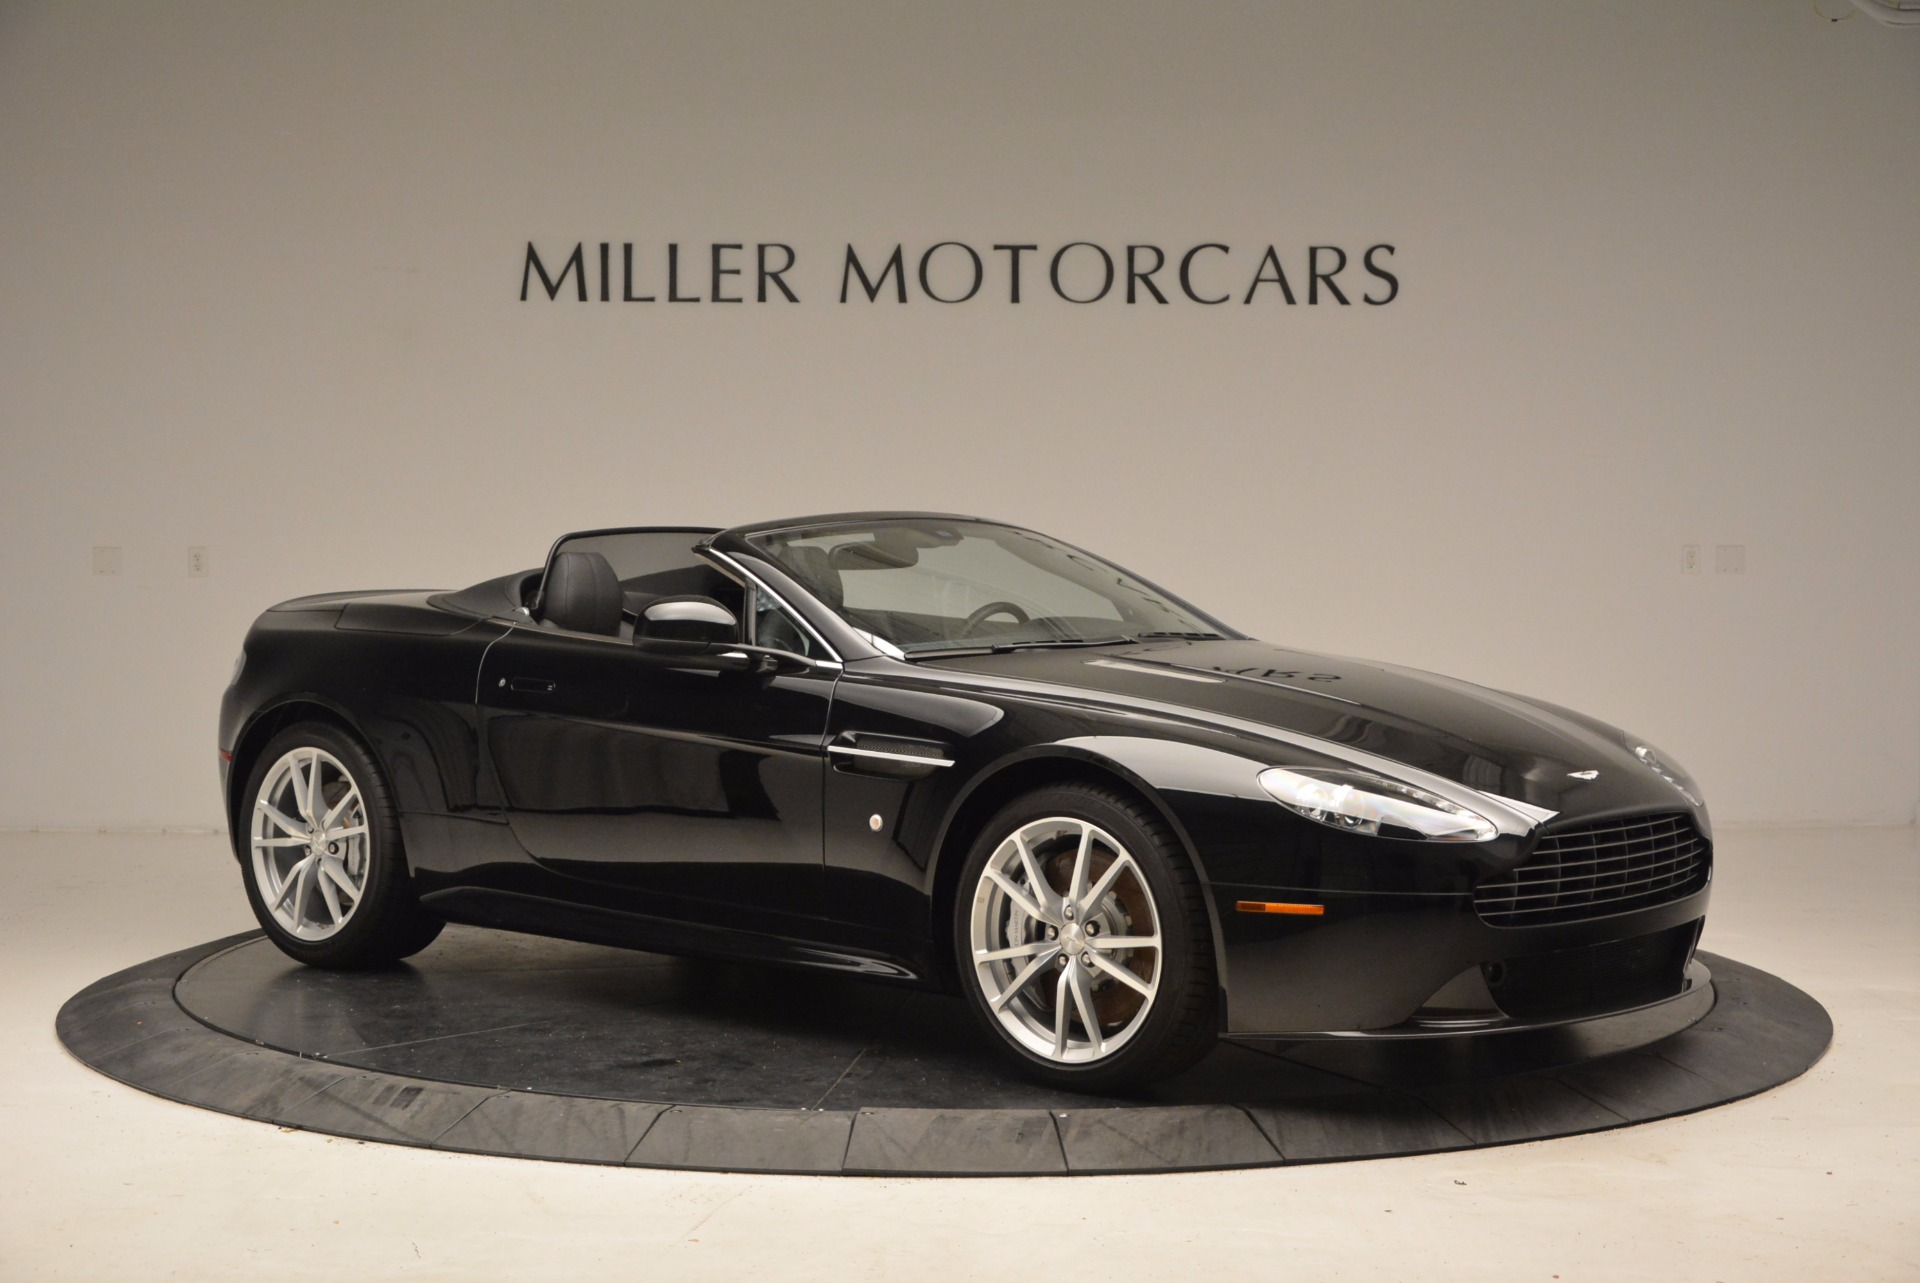 New 2016 Aston Martin V8 Vantage Roadster For Sale In Westport, CT 1546_p10